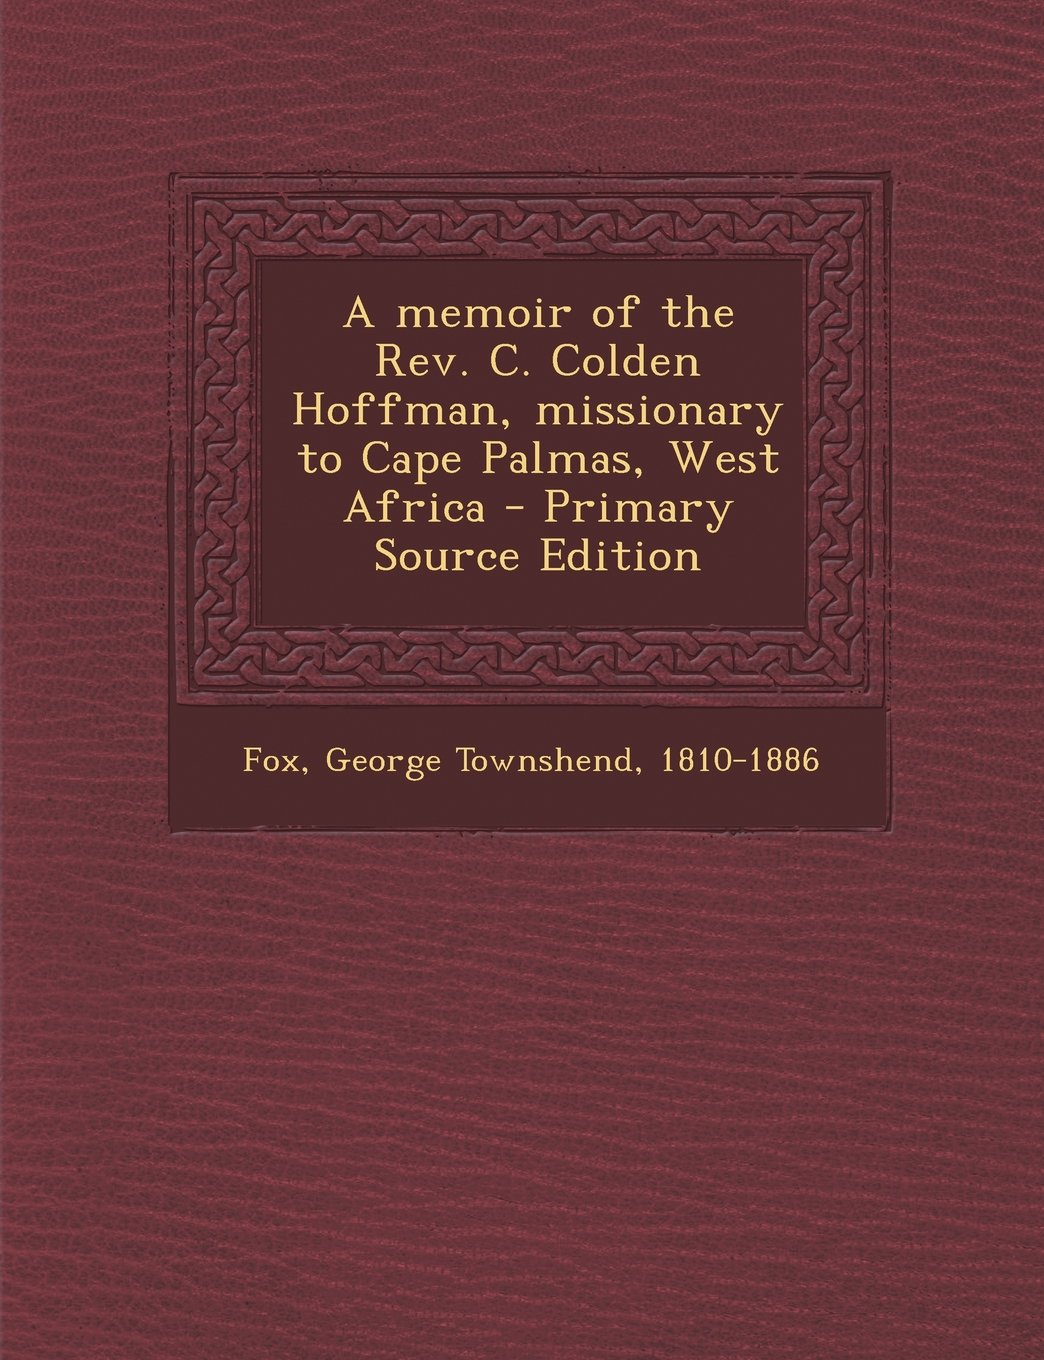 Download A Memoir of the REV. C. Colden Hoffman, Missionary to Cape Palmas, West Africa - Primary Source Edition ebook